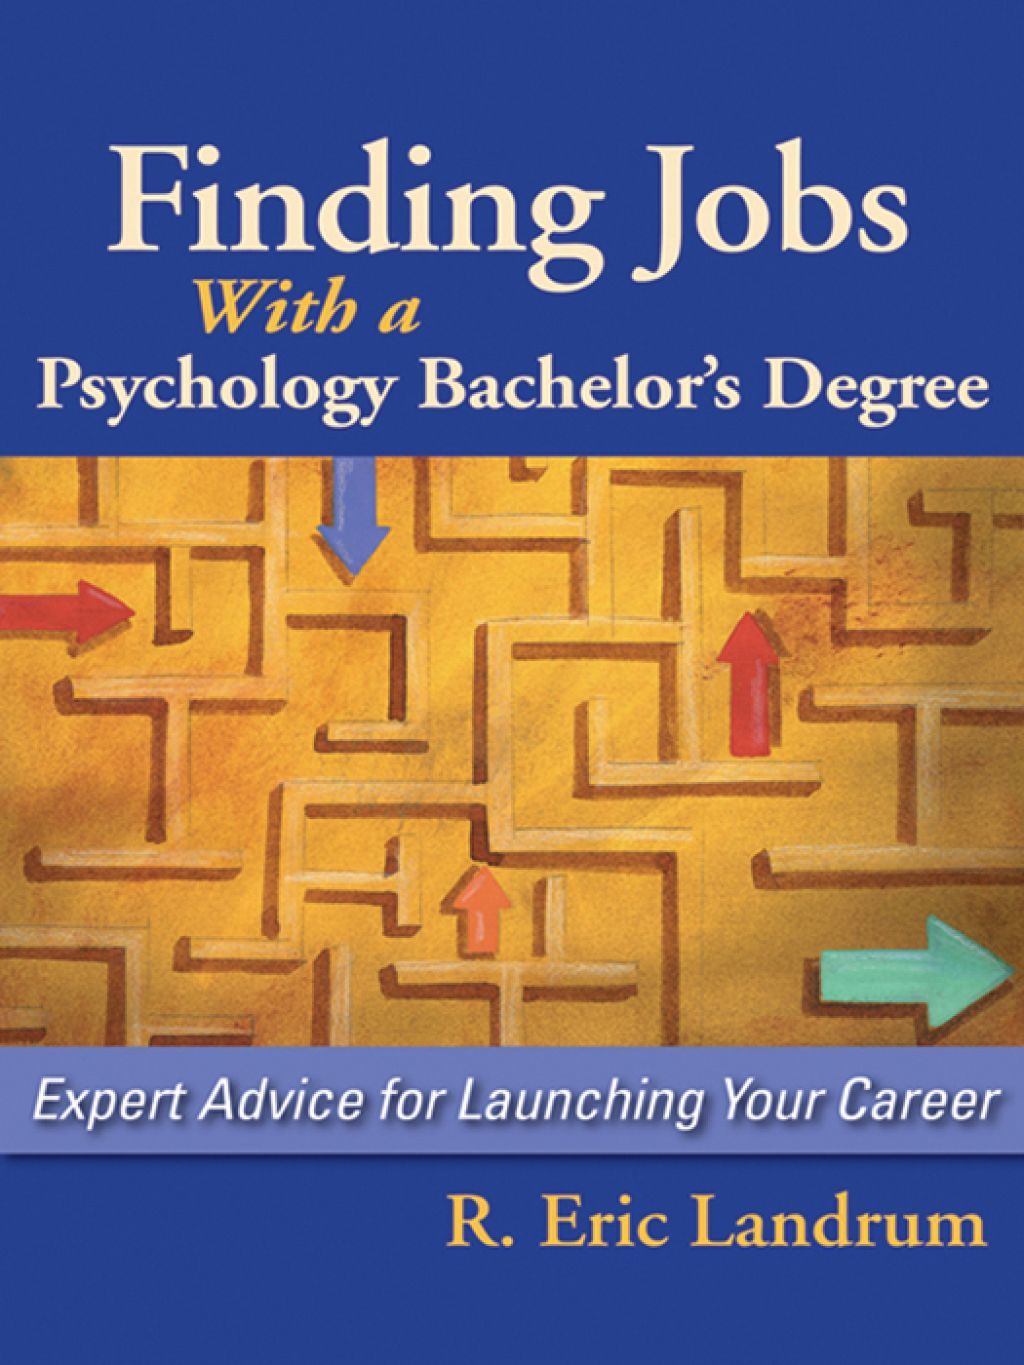 Finding Jobs With a Psychology Bachelor's Degree (eBook